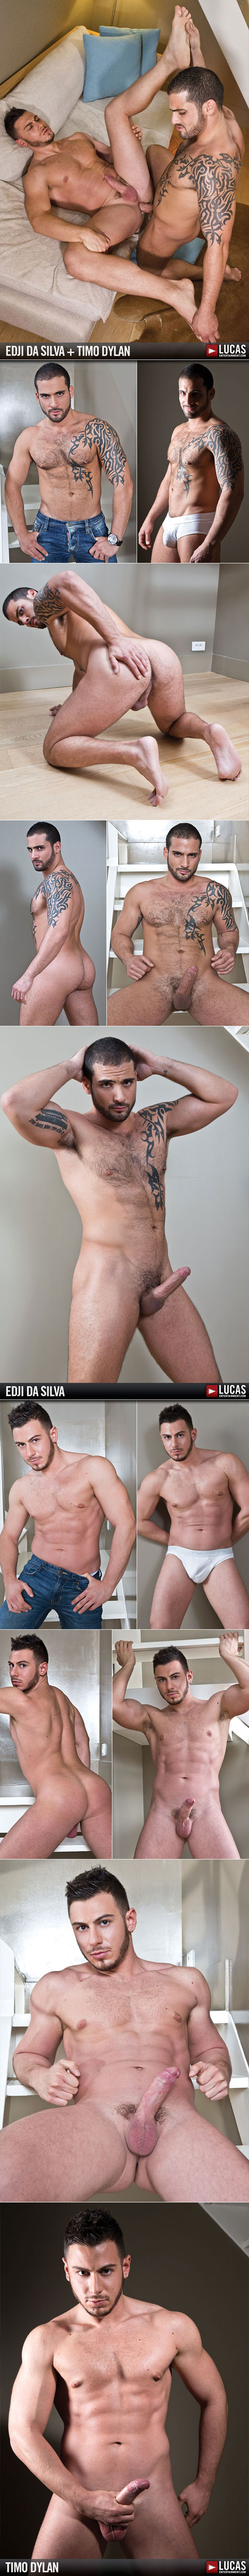 Lucas Entertainment: Edji Da Silva has bareback sex with his husband Timo Dylan